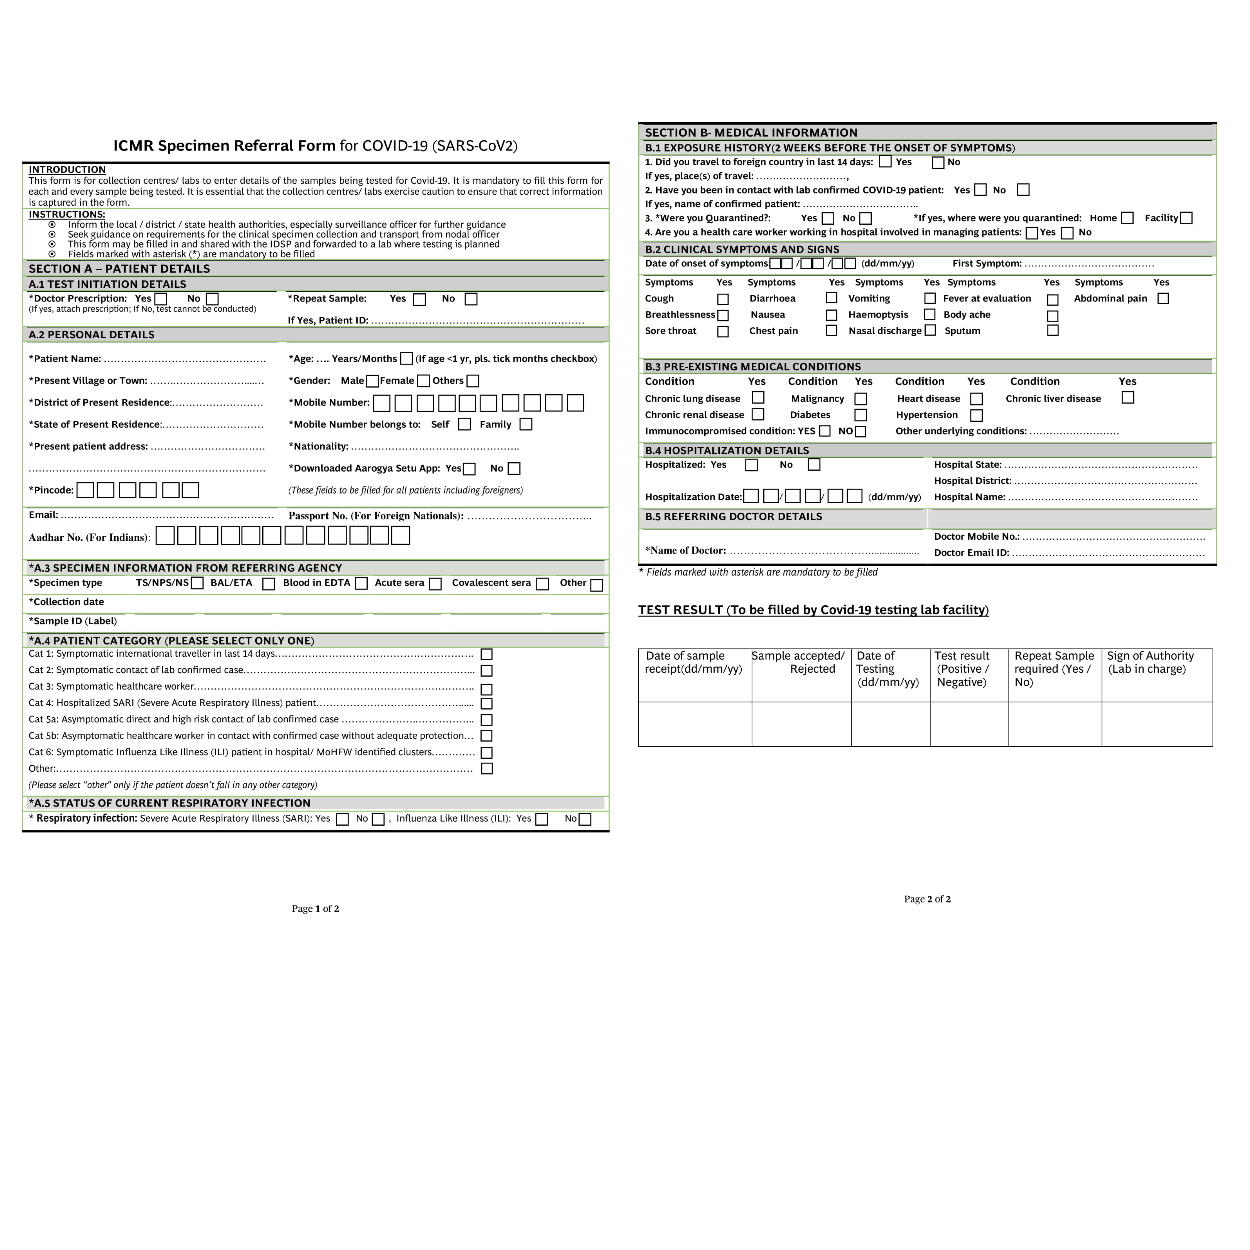 ICMR Spiceman Referral Form for COVID-19 (SARS-CoV2)